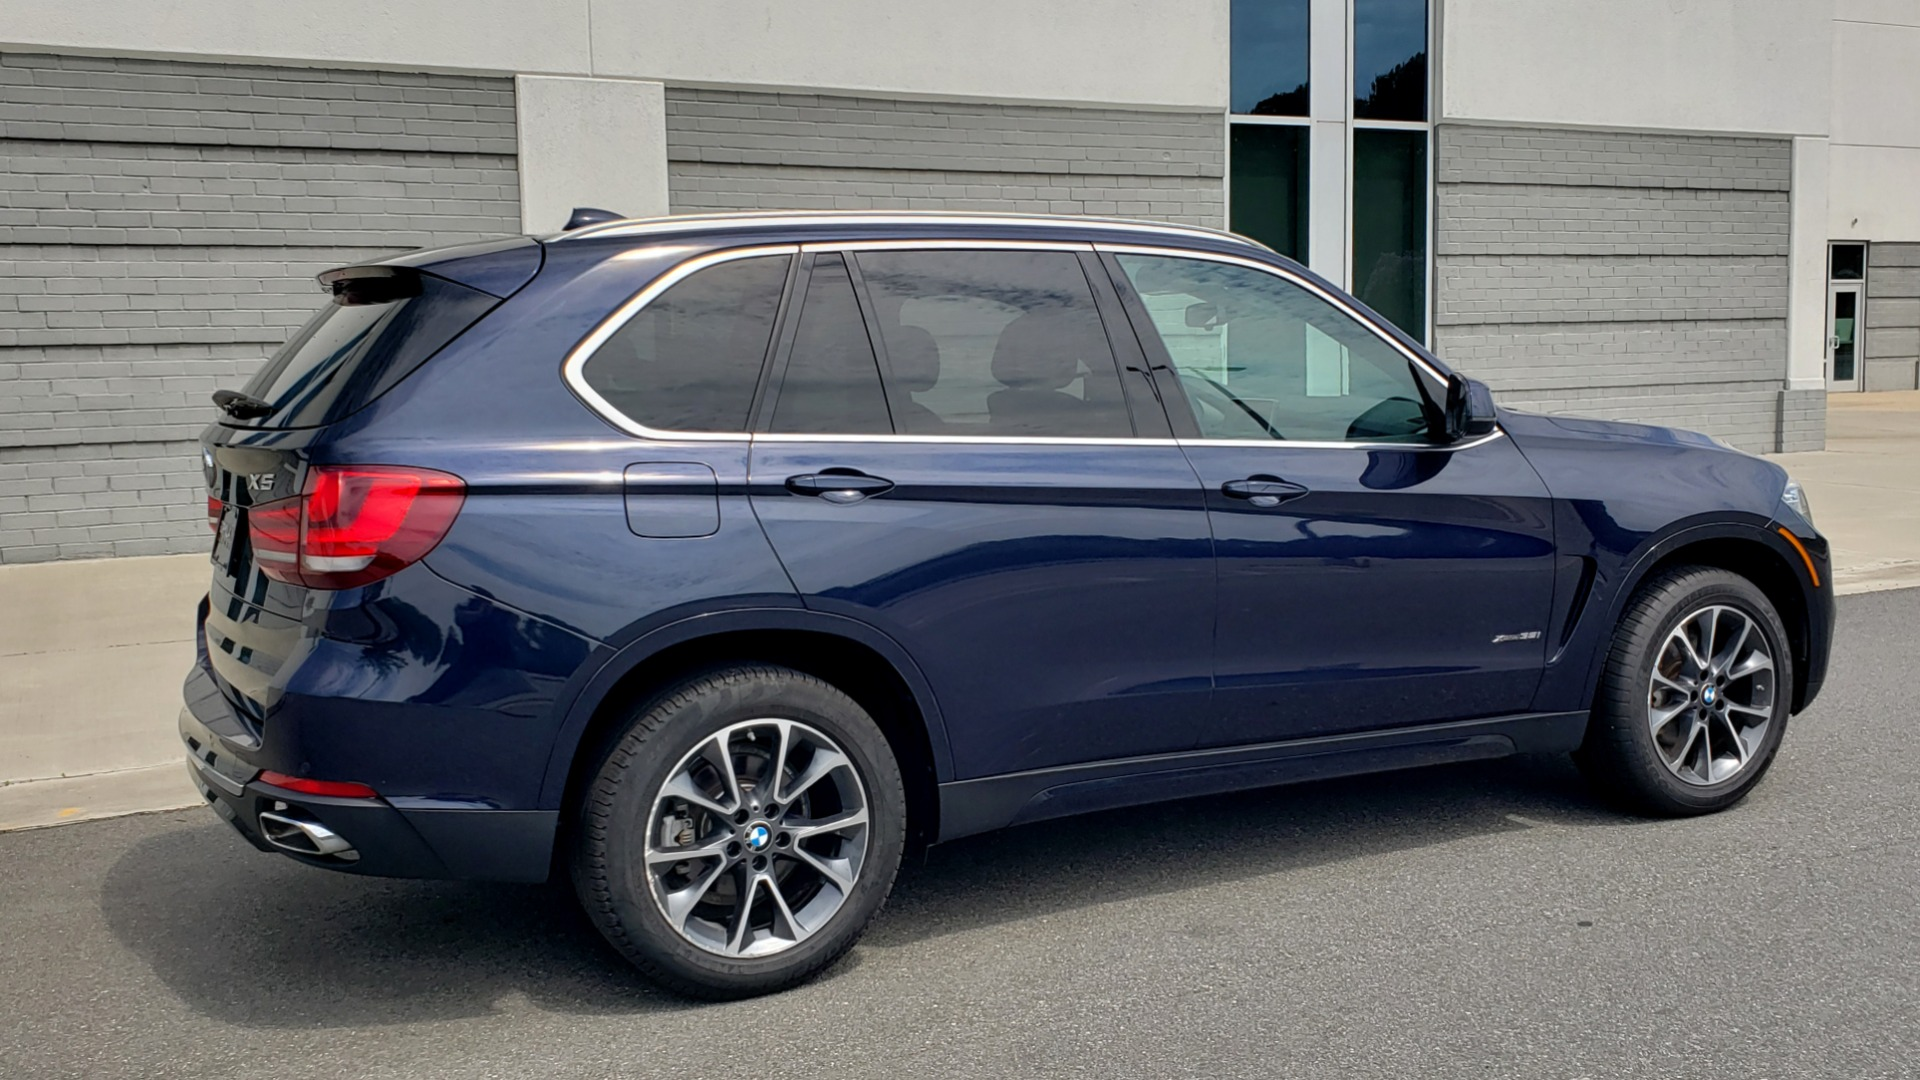 Used 2018 BMW X5 XDRIVE35I PREMIUM / LUXURY / DRVR ASST / HUD / LANE WARNING / REARVIEW for sale $43,695 at Formula Imports in Charlotte NC 28227 8